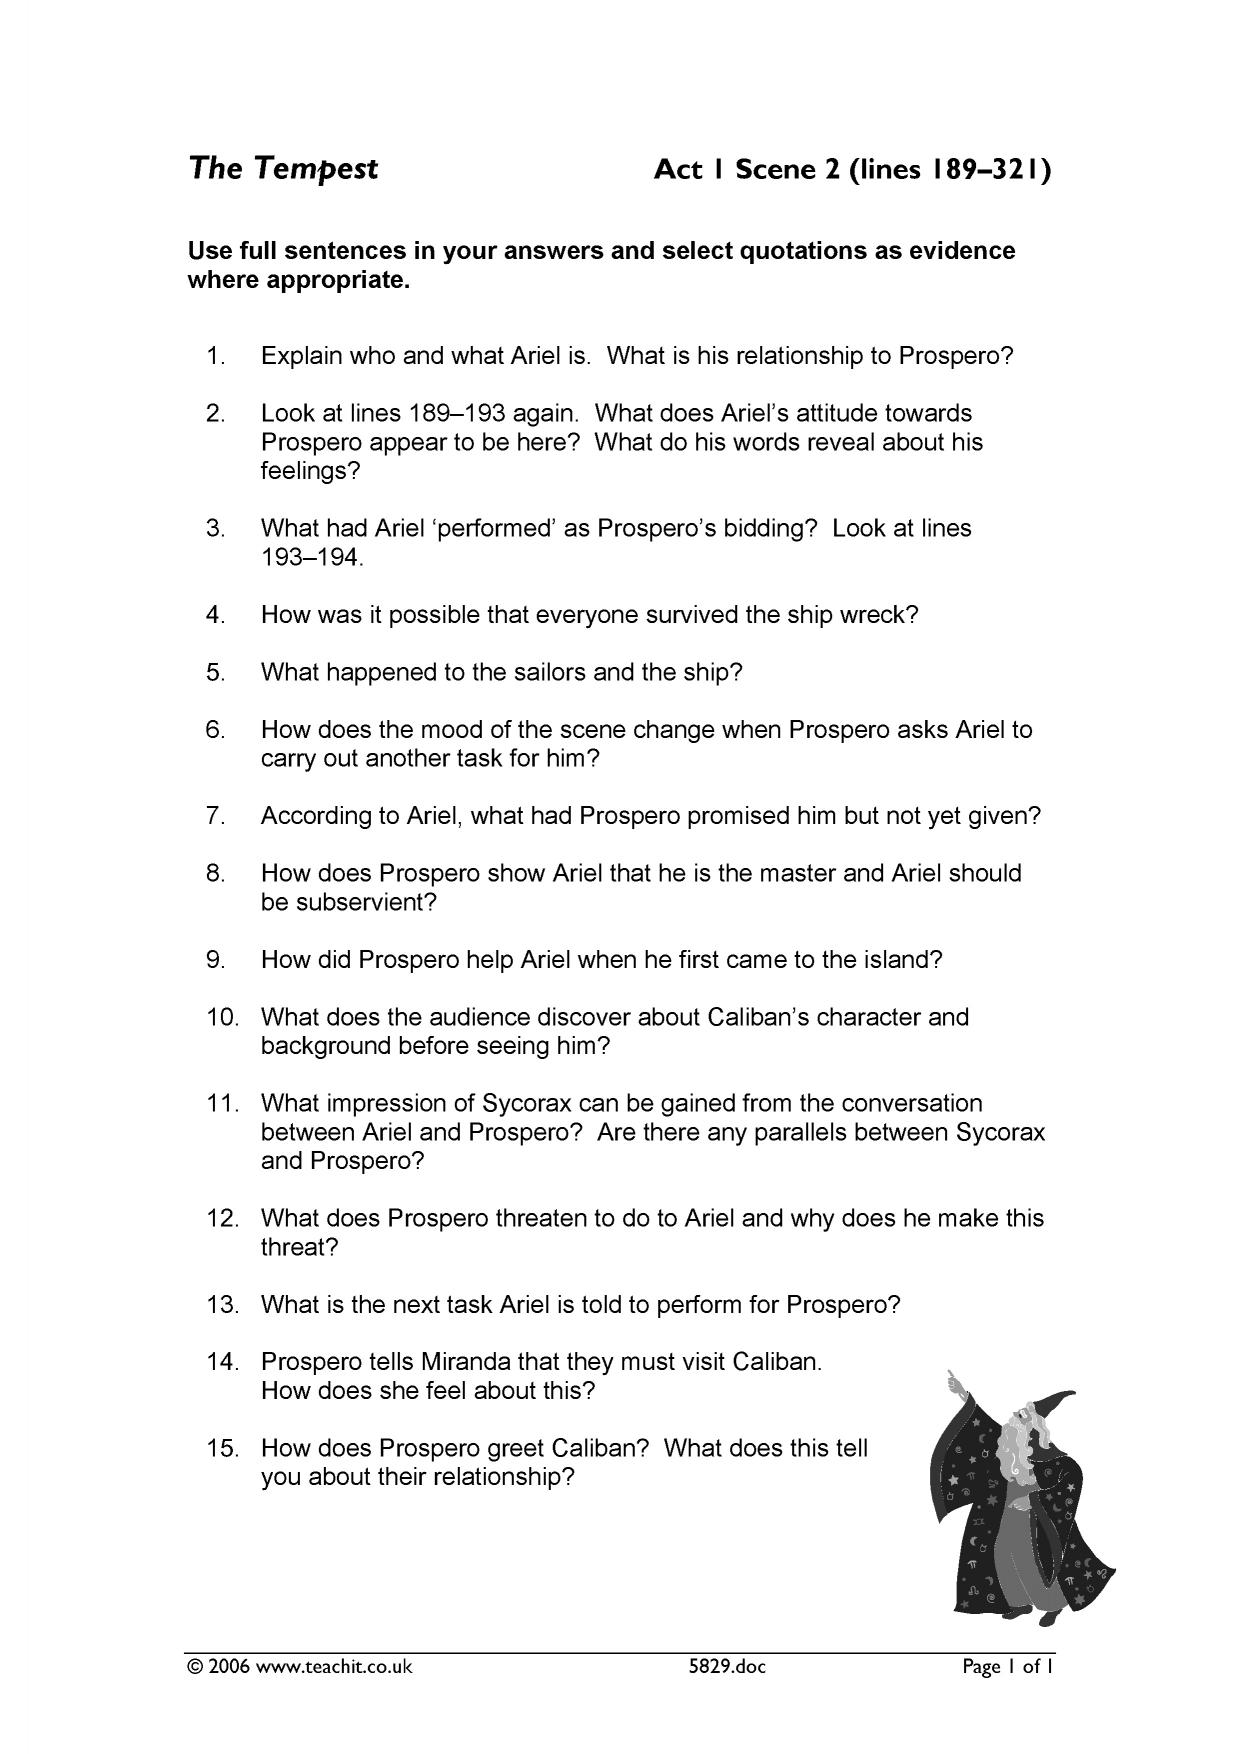 - Act 1 Scene 2 Comprehension Questions